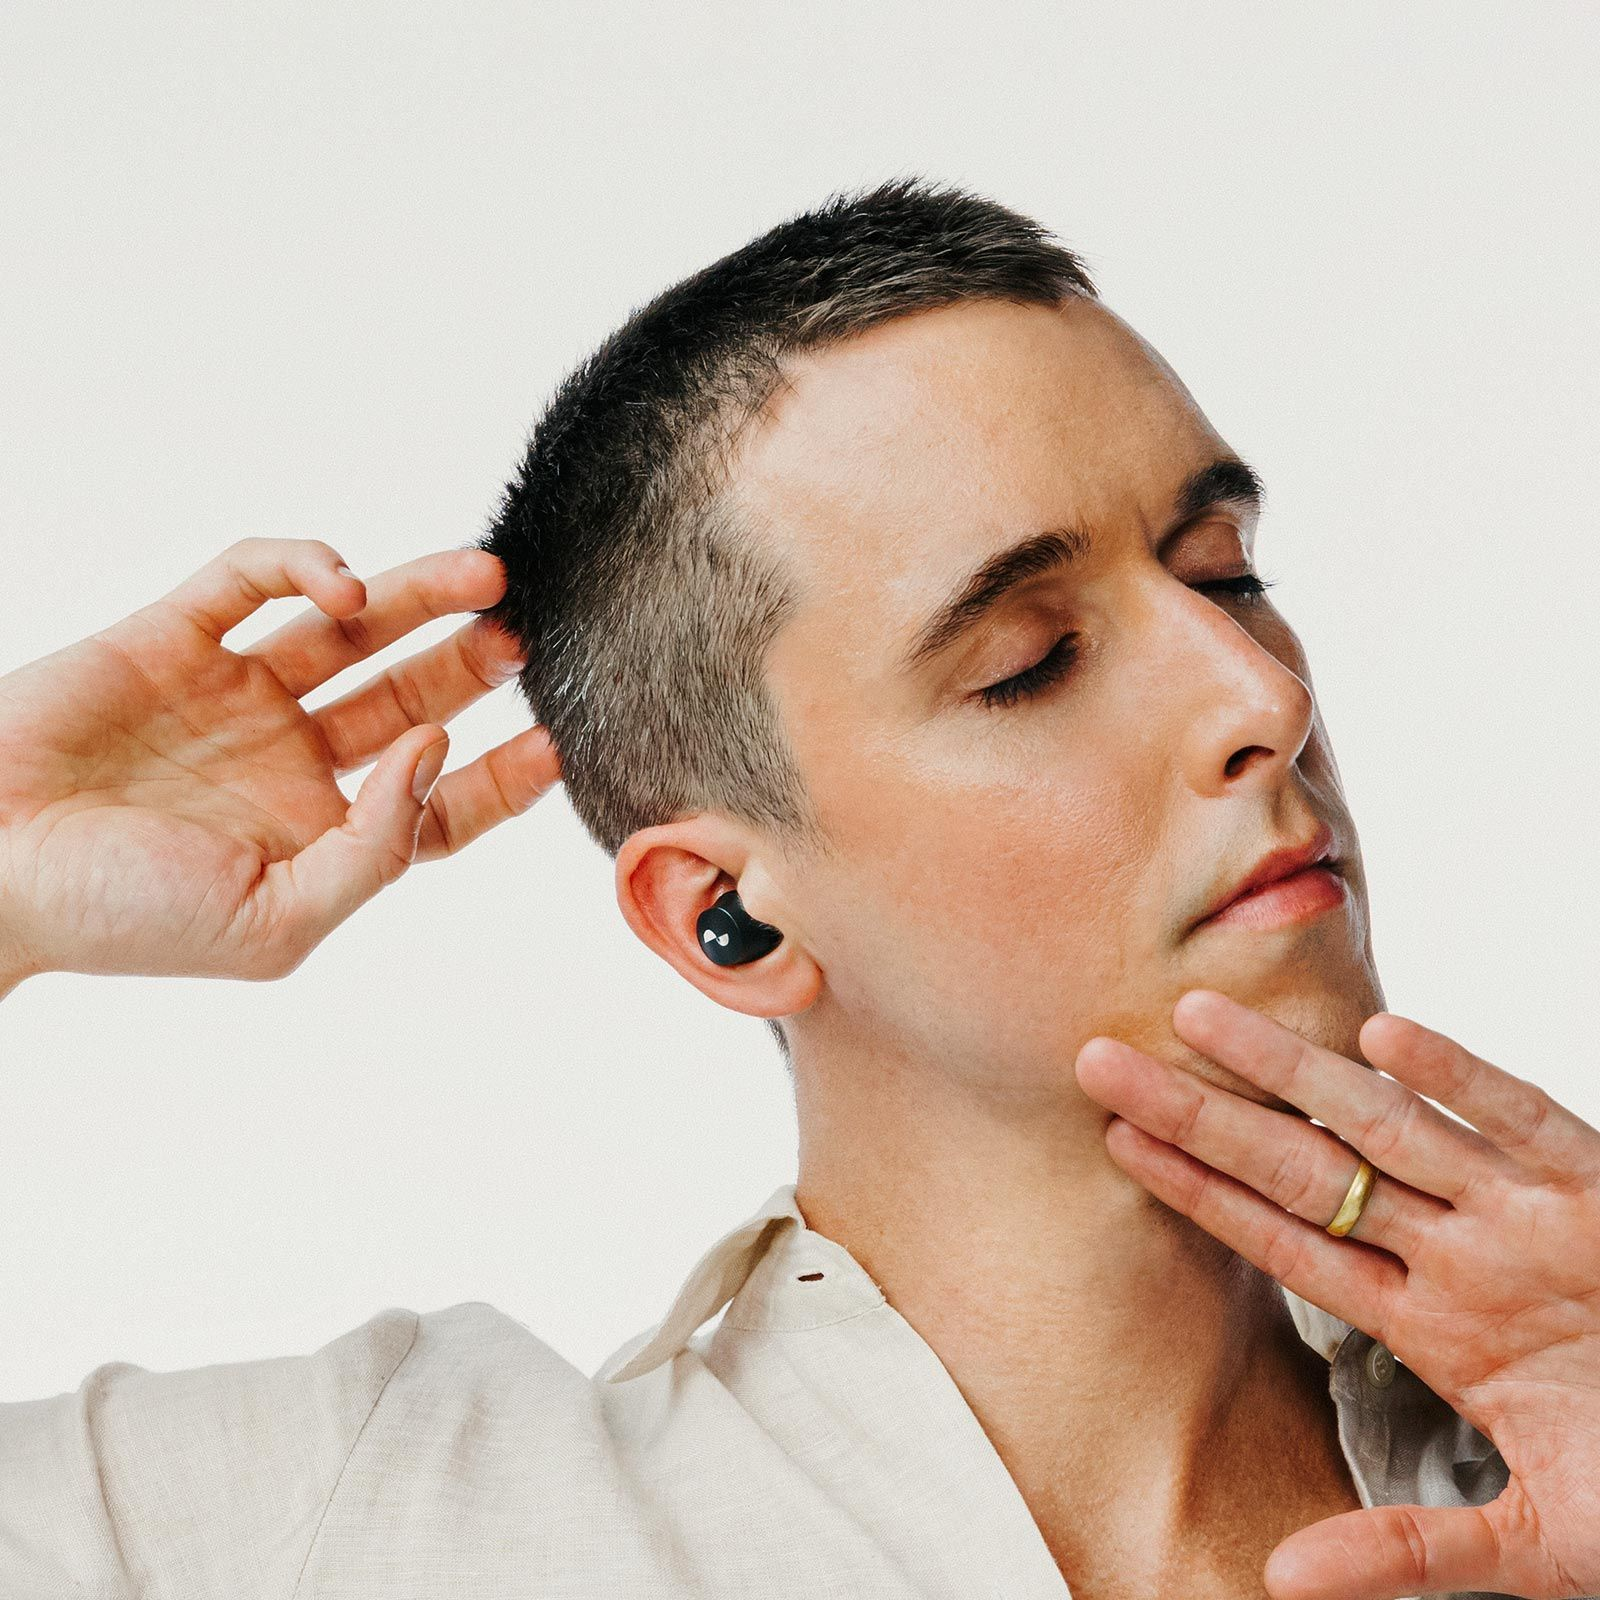 Person with eyes closed with NURABUDS earbuds in ears